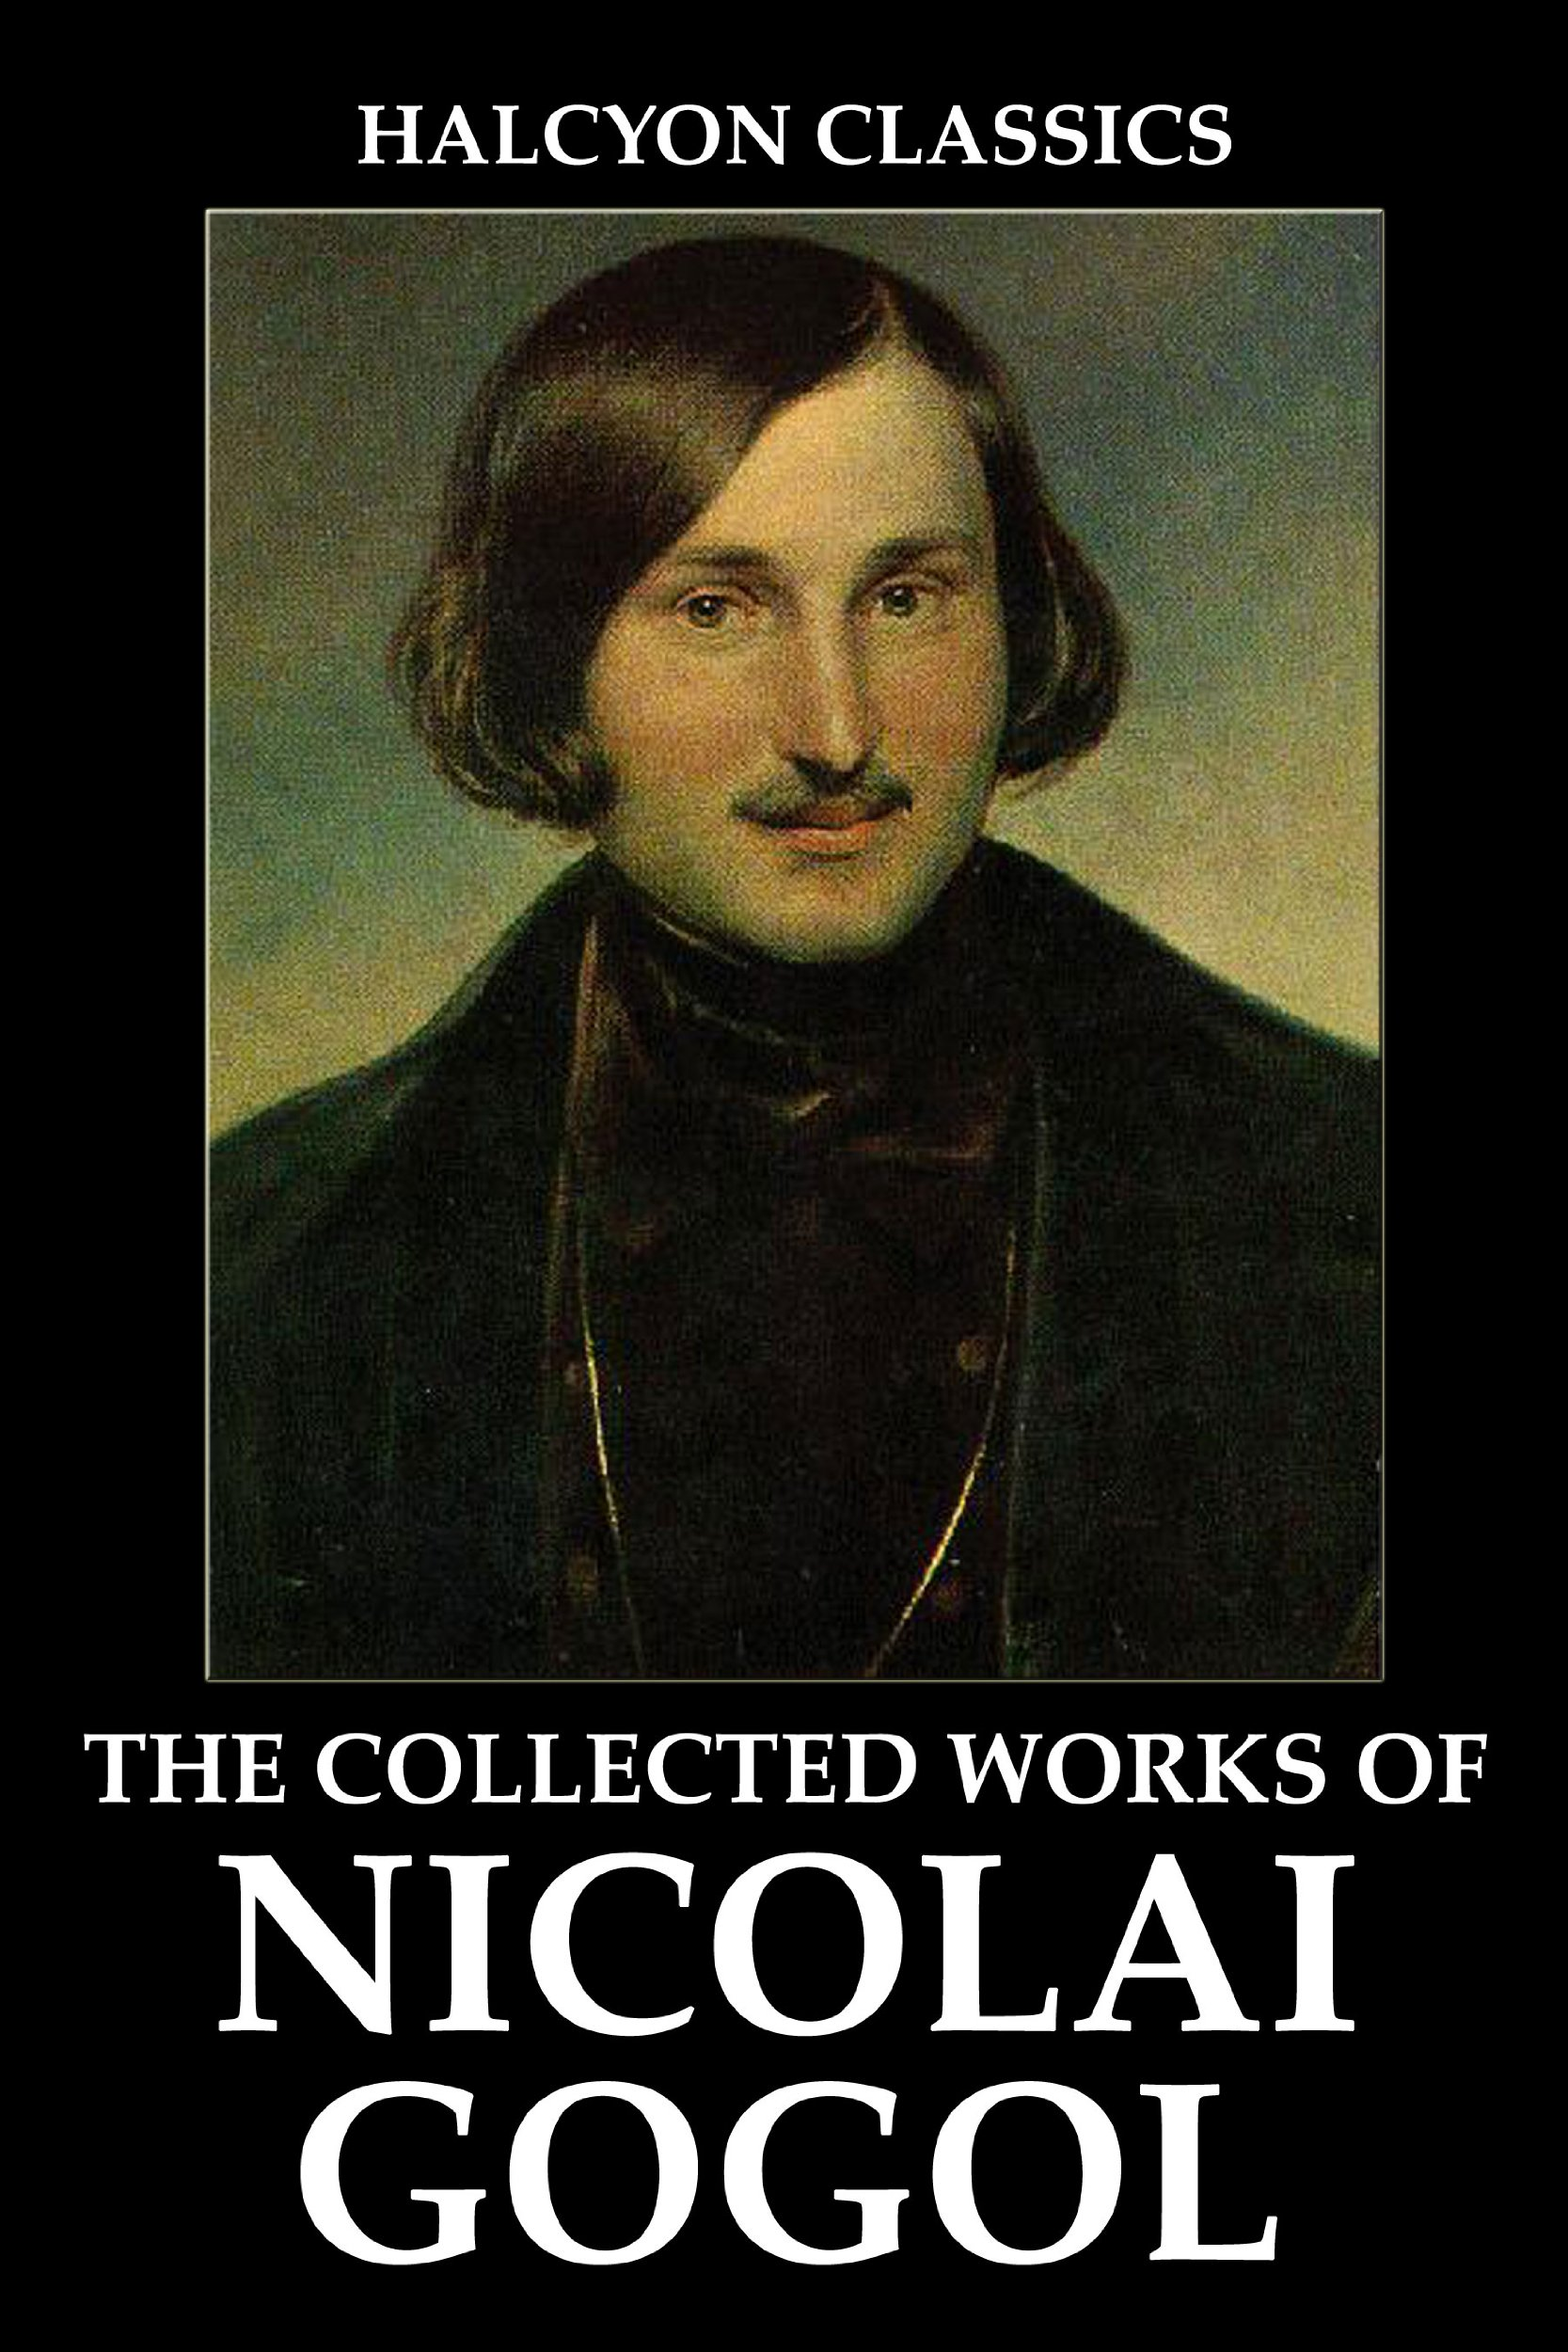 The Collected Works of Nicolai Gogol (Unexpurgated Edition) (Halcyon Classics) (English Edition)